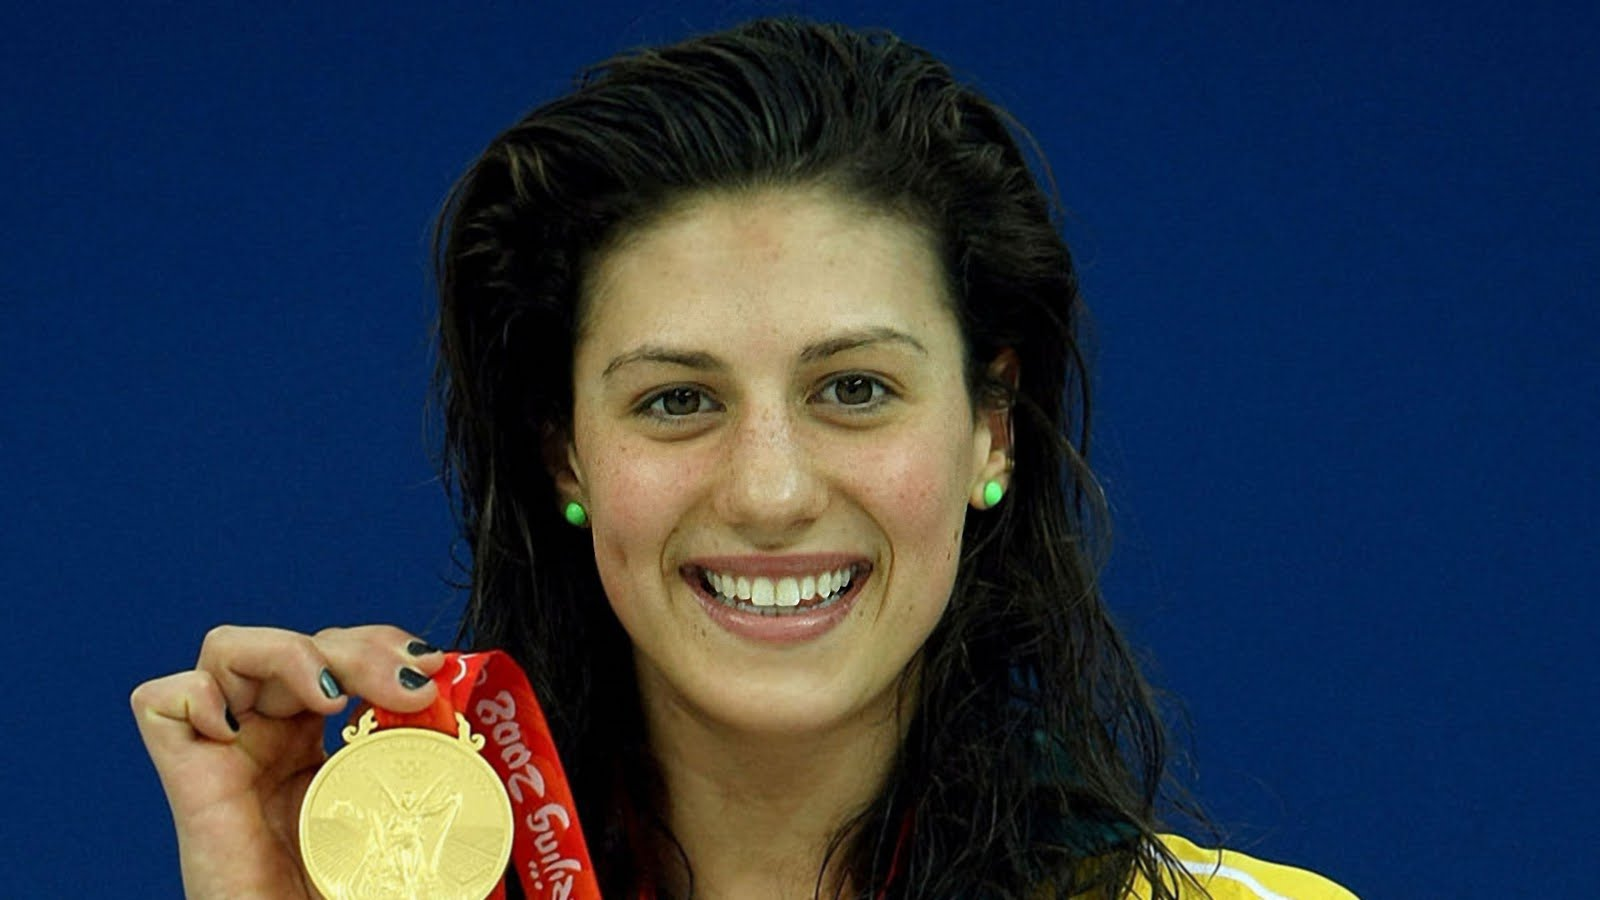 Watch Stephanie Rice 3 Olympic medals video